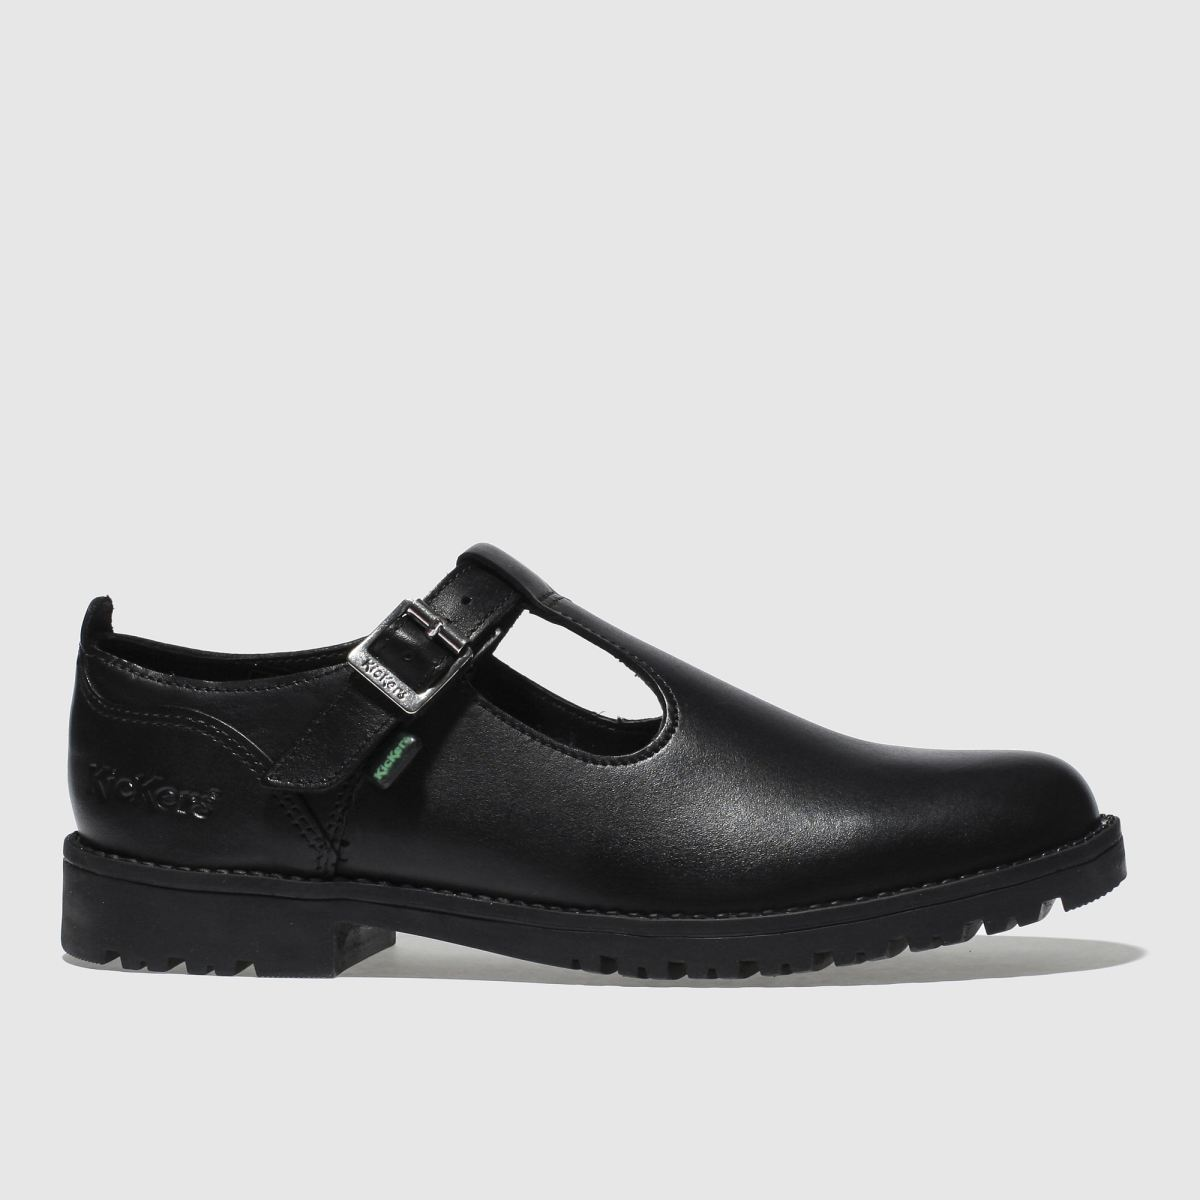 Kickers Black Lachly T Girls Youth Shoes